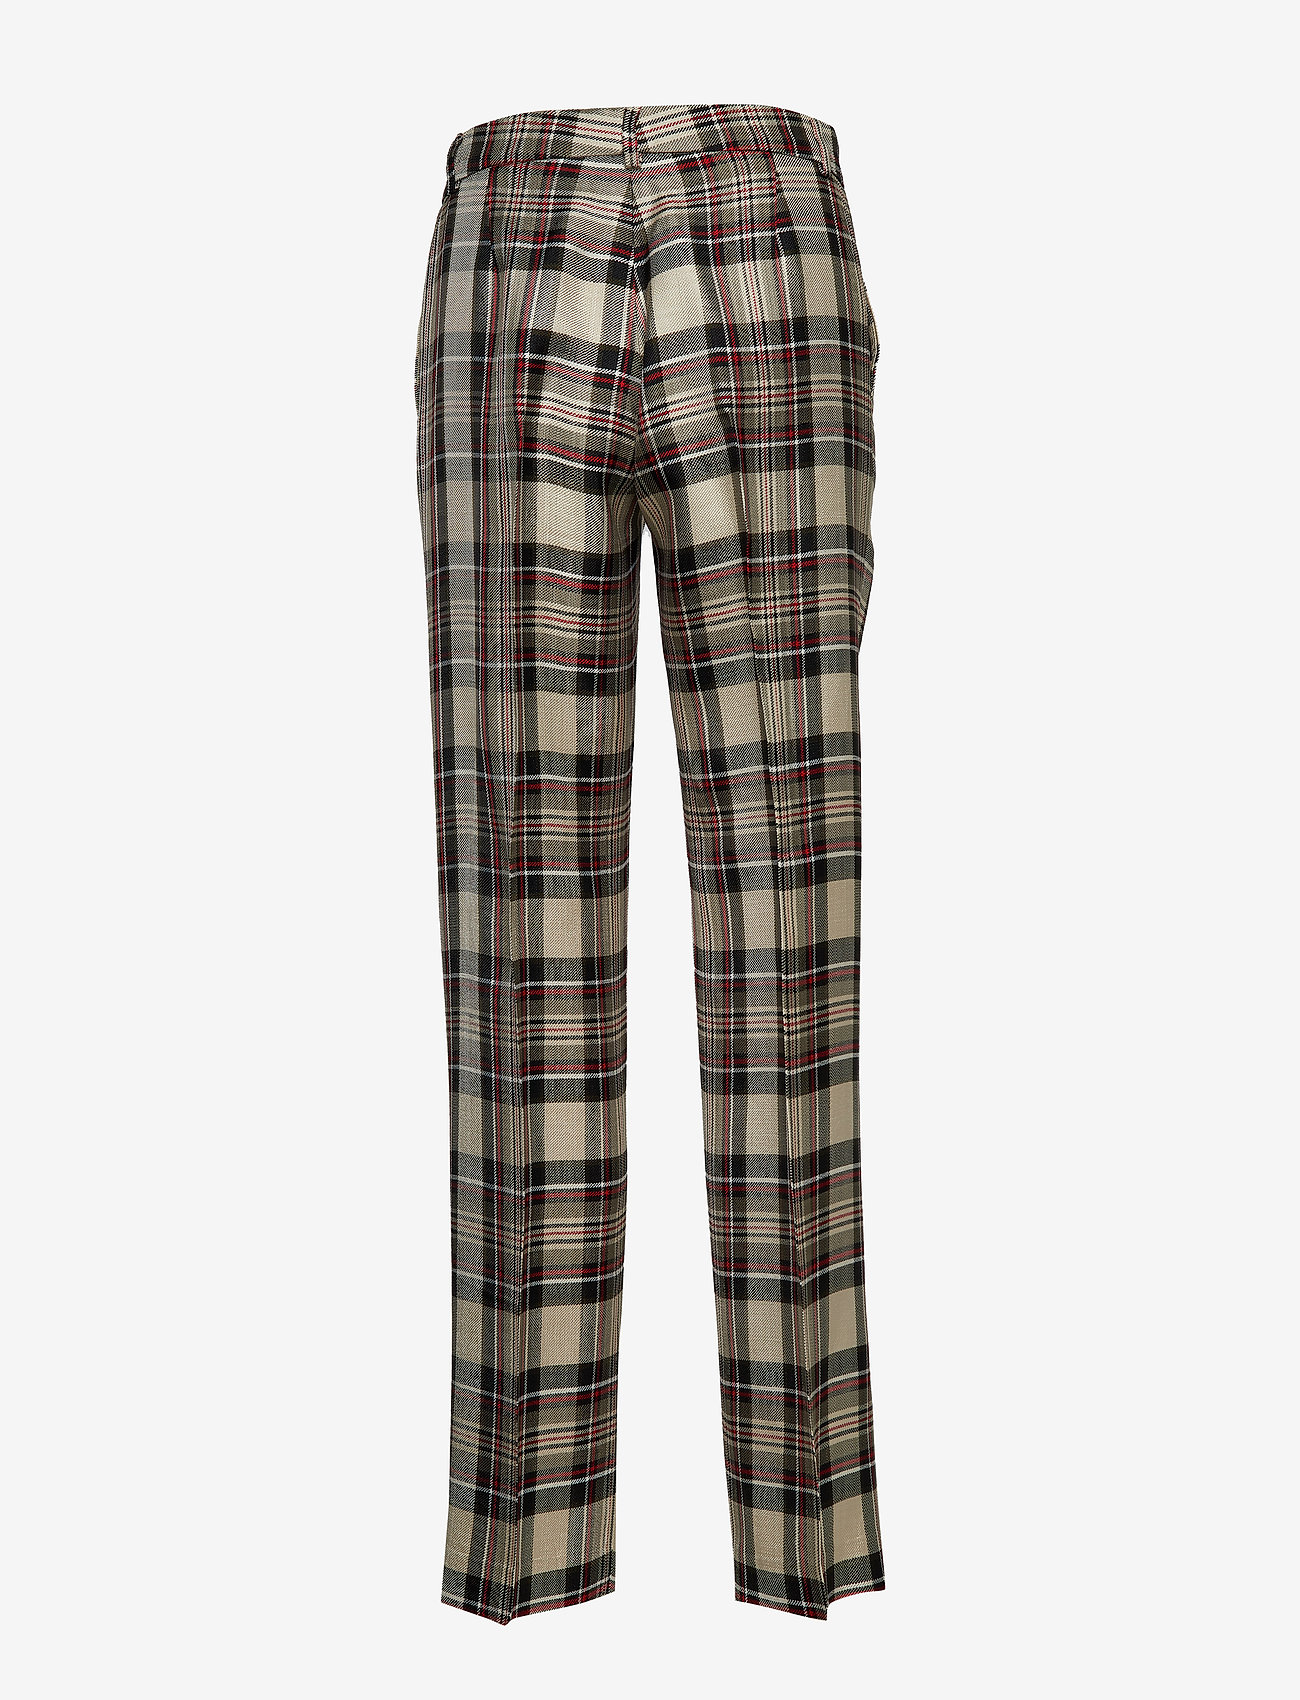 Soft Trouser (Red Window Check) - Hope HyFnTF